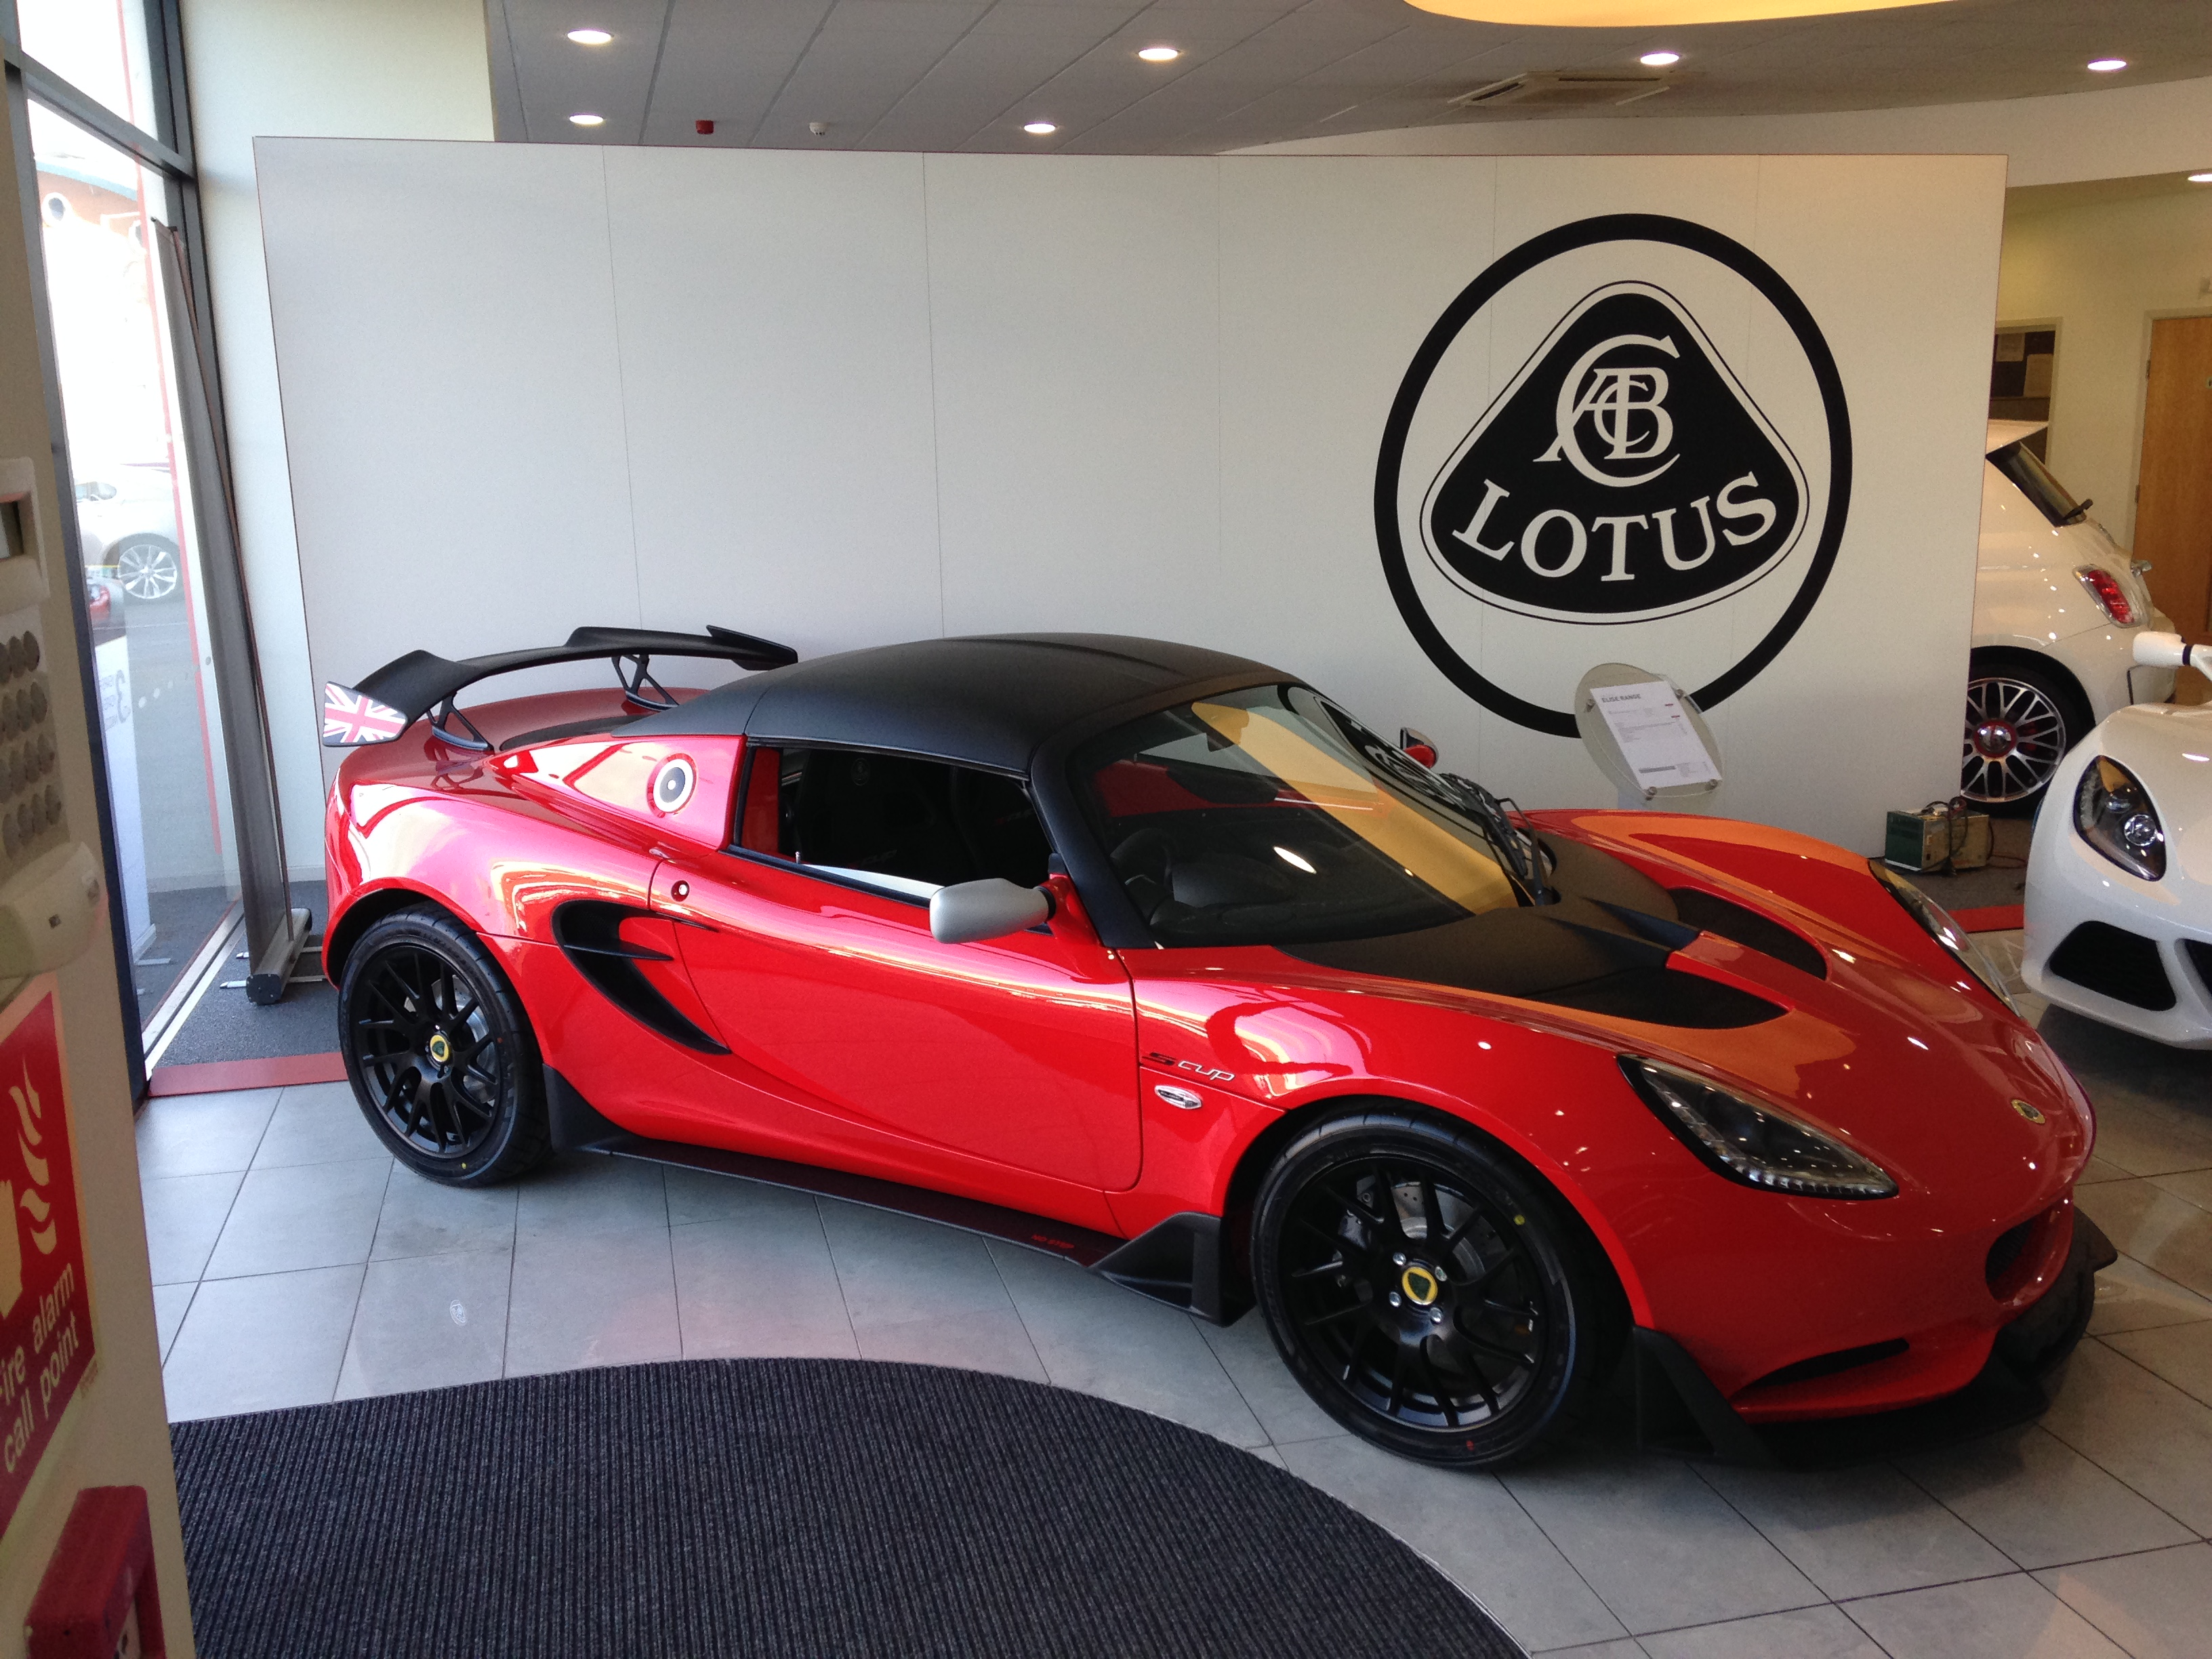 Lotus Elise S Cup, Idle Trackday car, what would you have?